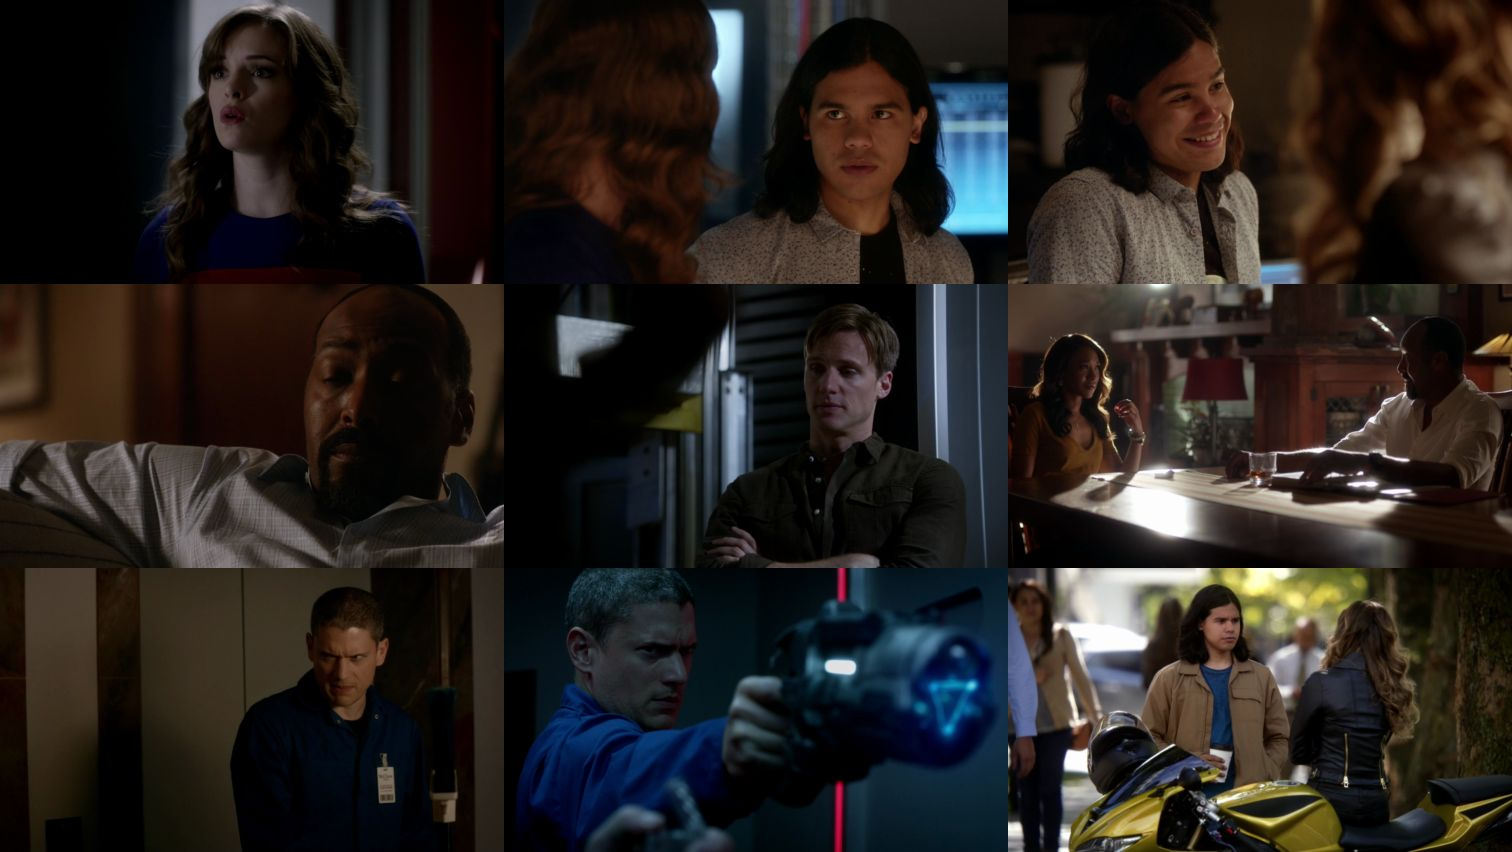 The Flash 2014 S02E03 HDTV x264-LOL